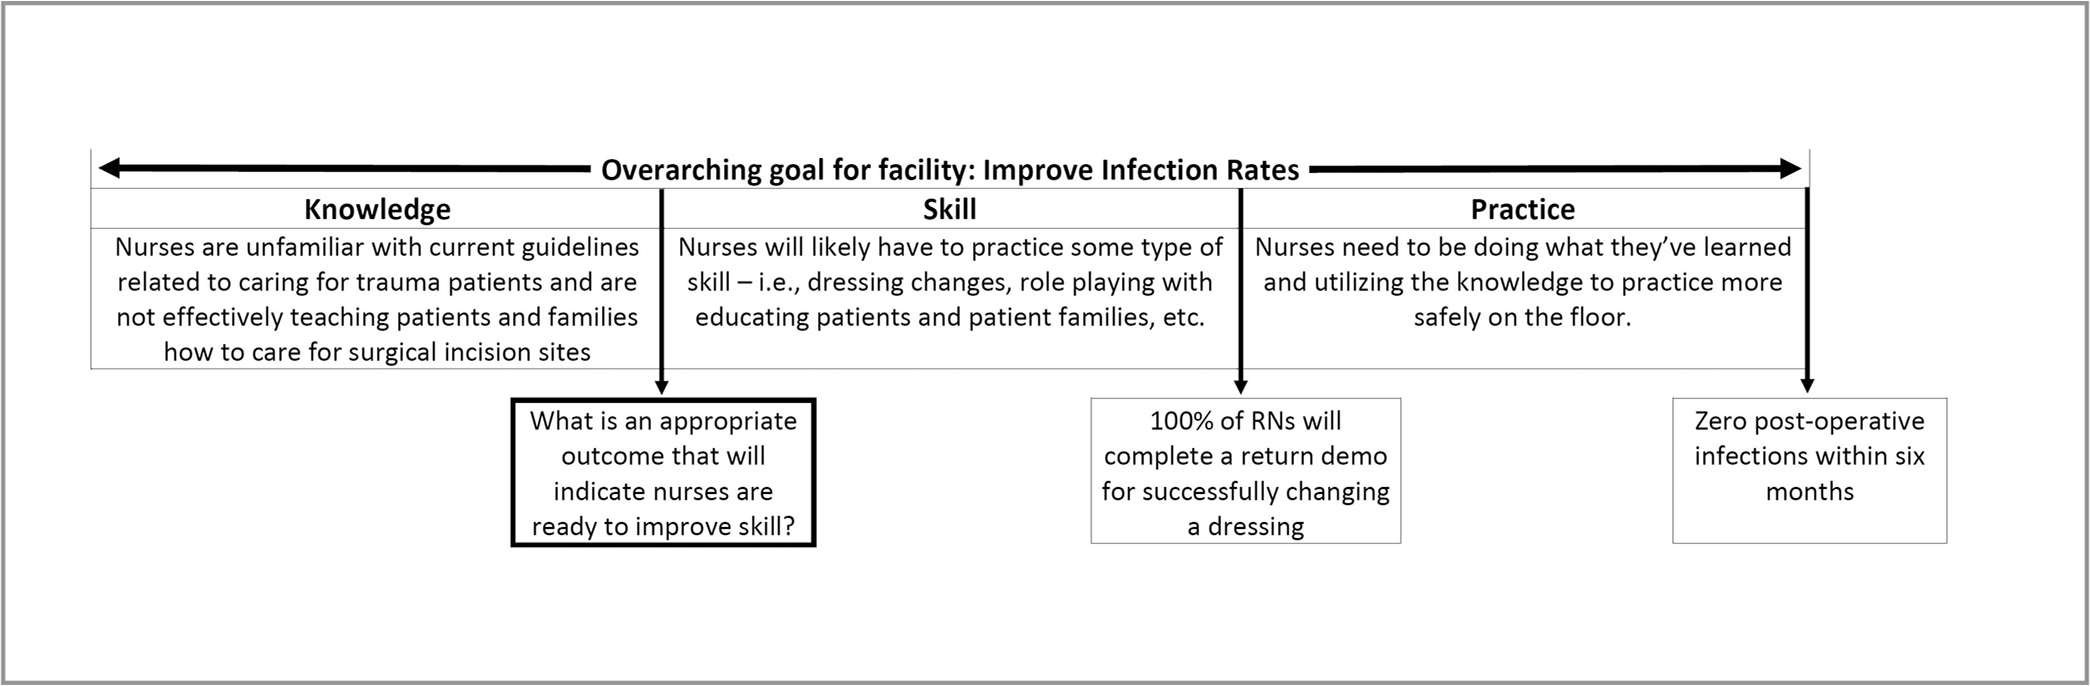 Incremental goals applied to continuing nursing education activities. ©2019, Caroline Baughman, all rights reserved. Used with permission.